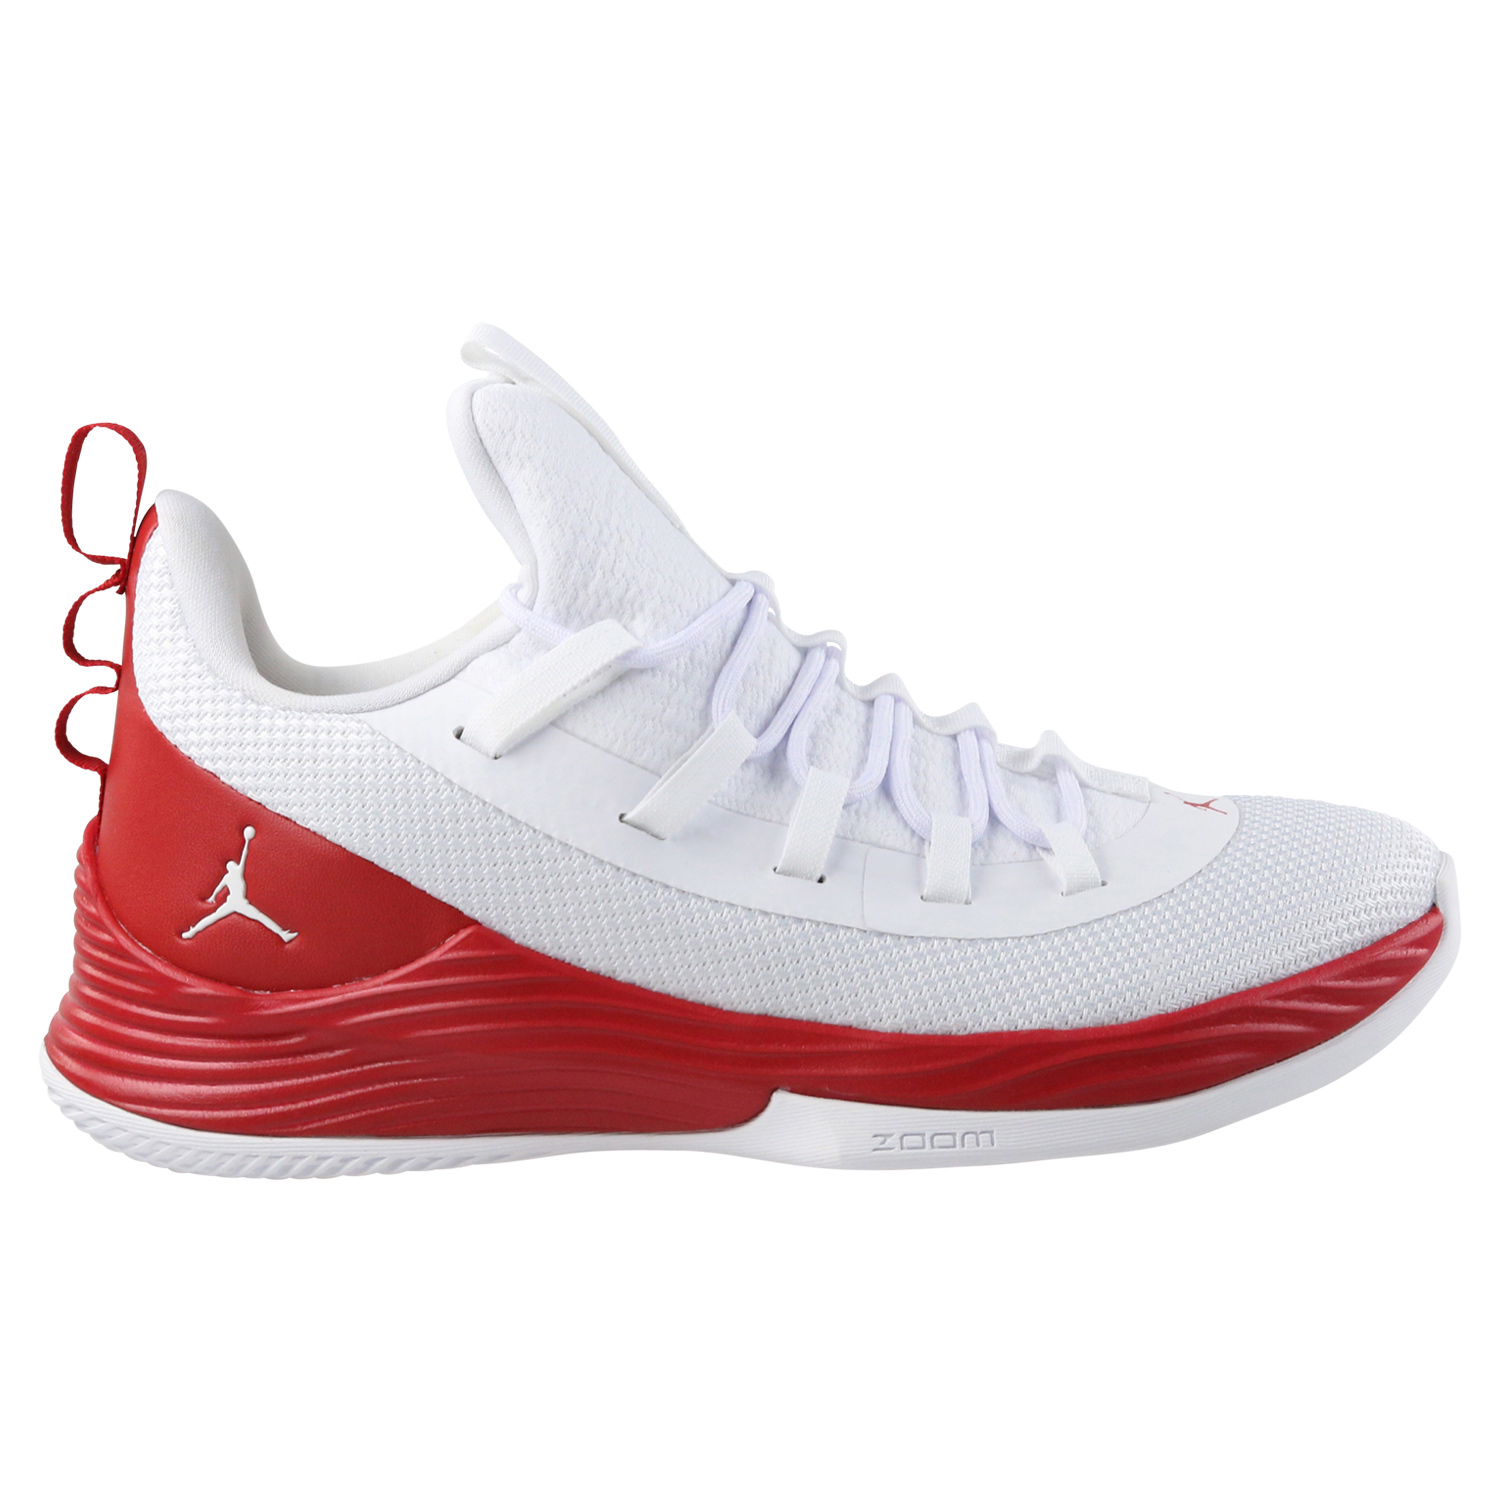 hot sale online fee56 0685f ... closeout nike jordan ultra fly 2 low basketballschuhe herren sneaker  abdbb a769c